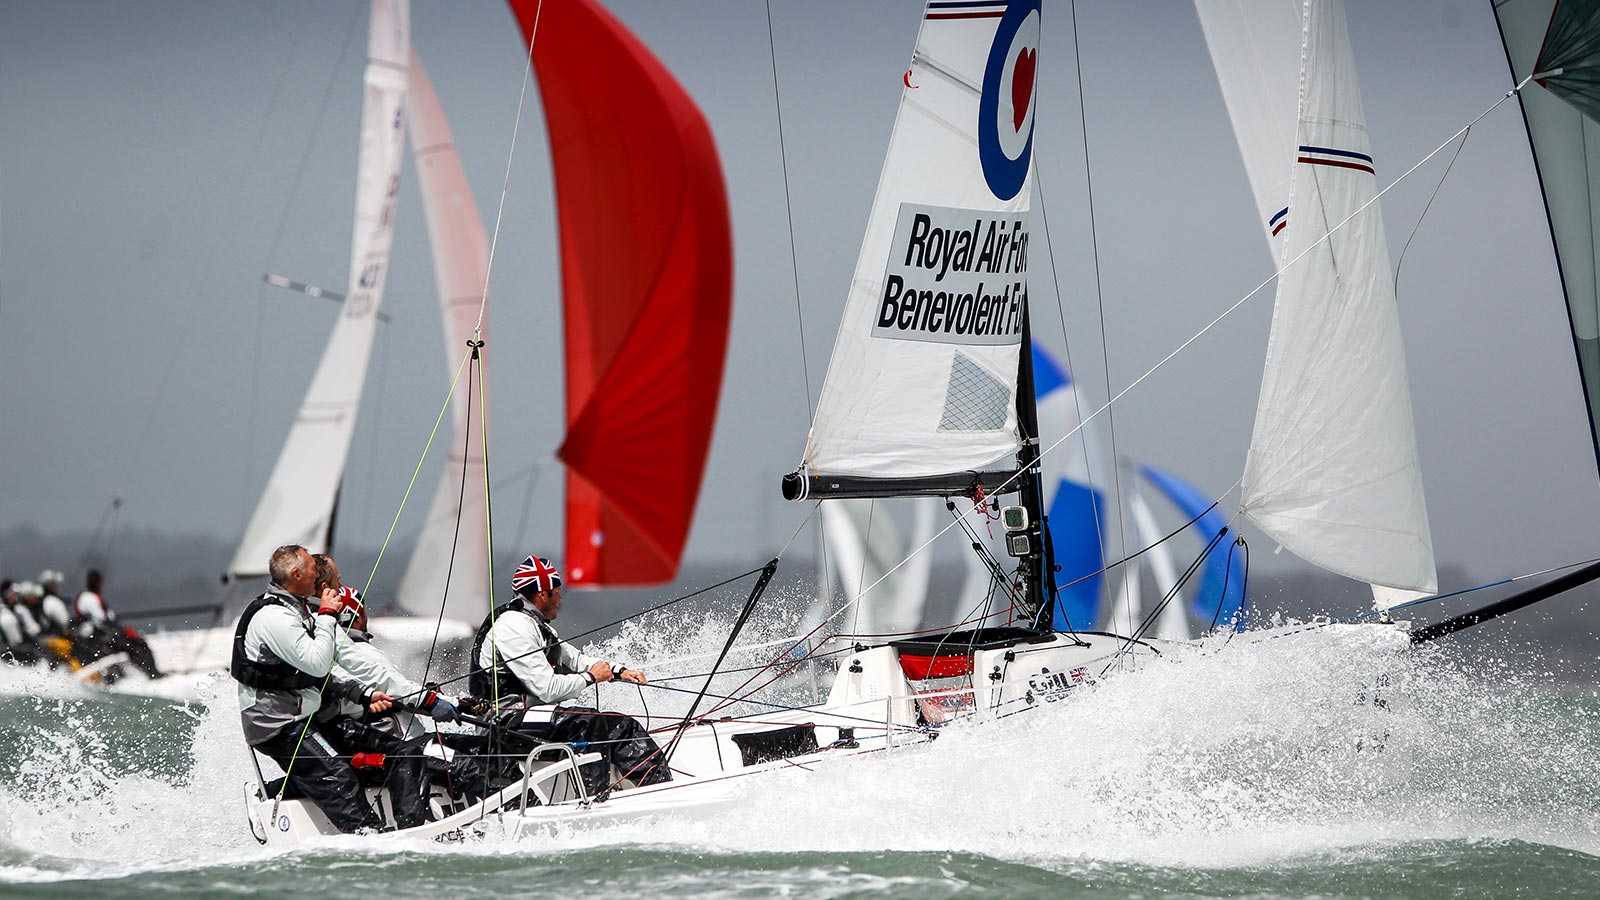 UK Qualifying System for the 2019 J/70 World Championship